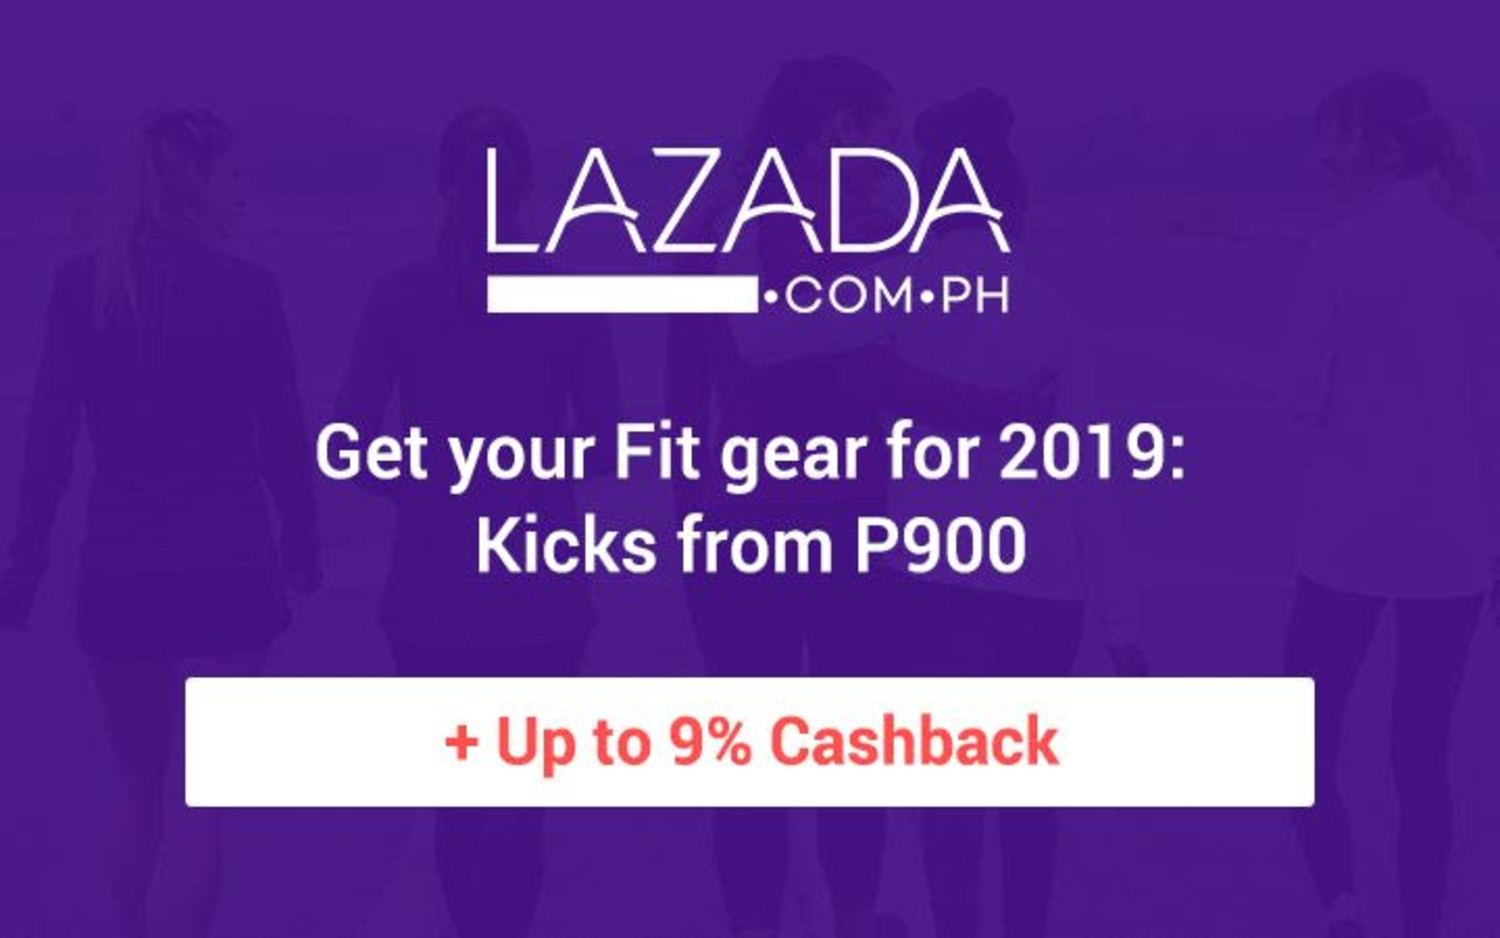 Lazada Get your Fit gear for 2019: Kicks from P900 + Up to 9% Cashback